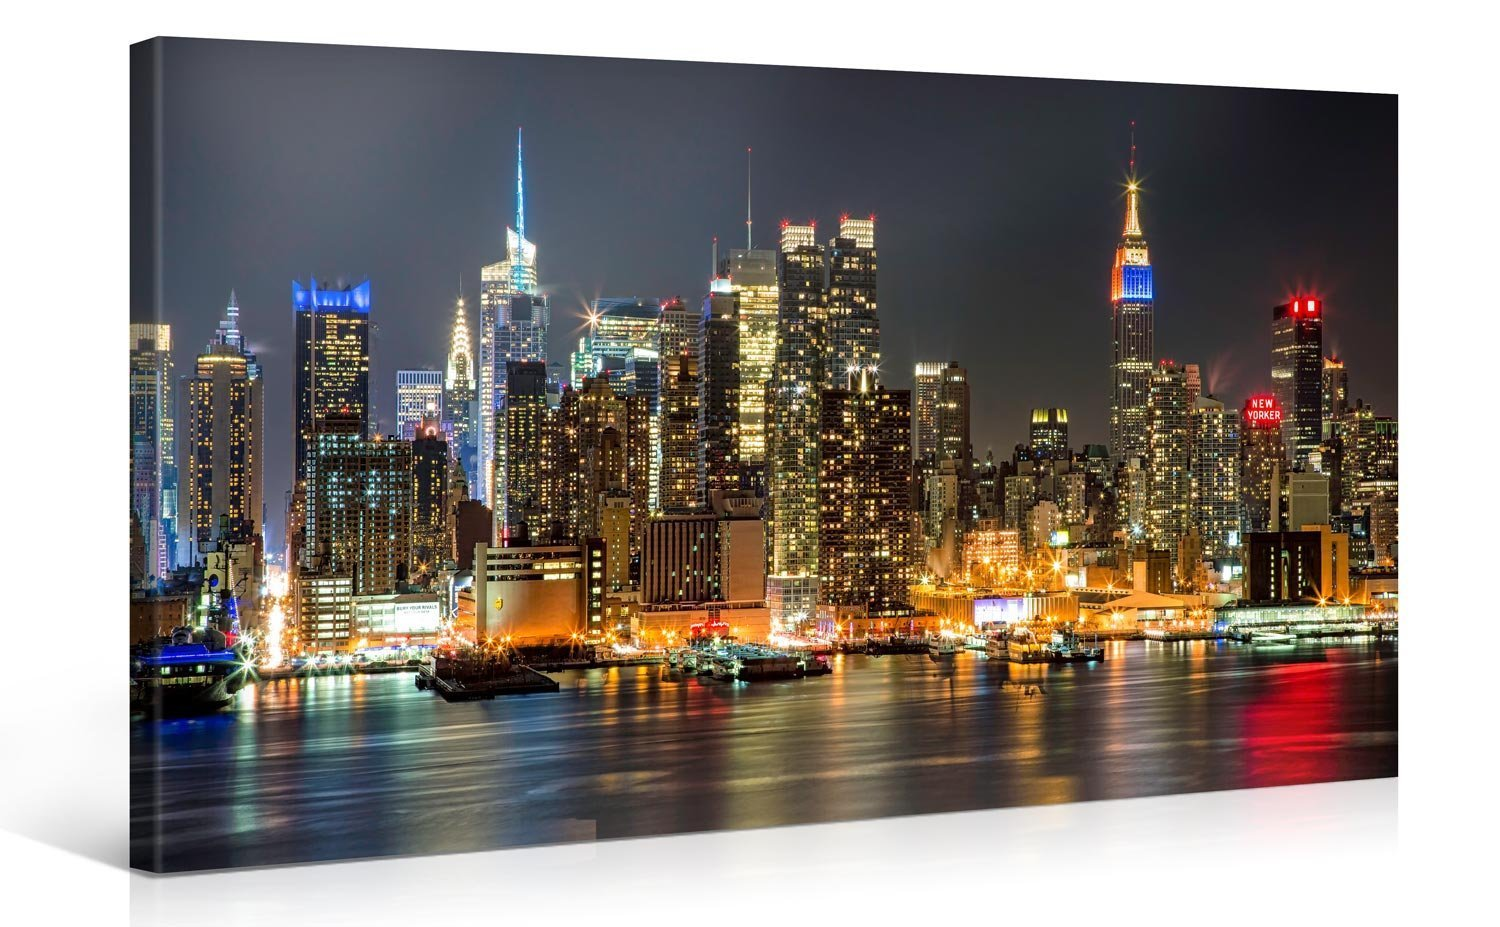 incredible City Wall Art Part - 7: Manhattan City Wall Art for Home Decor Night Lights Painting The Picture  Print On Canvas New York City Cityscape For Living Room Home Decor 40 x 20  Inch ...